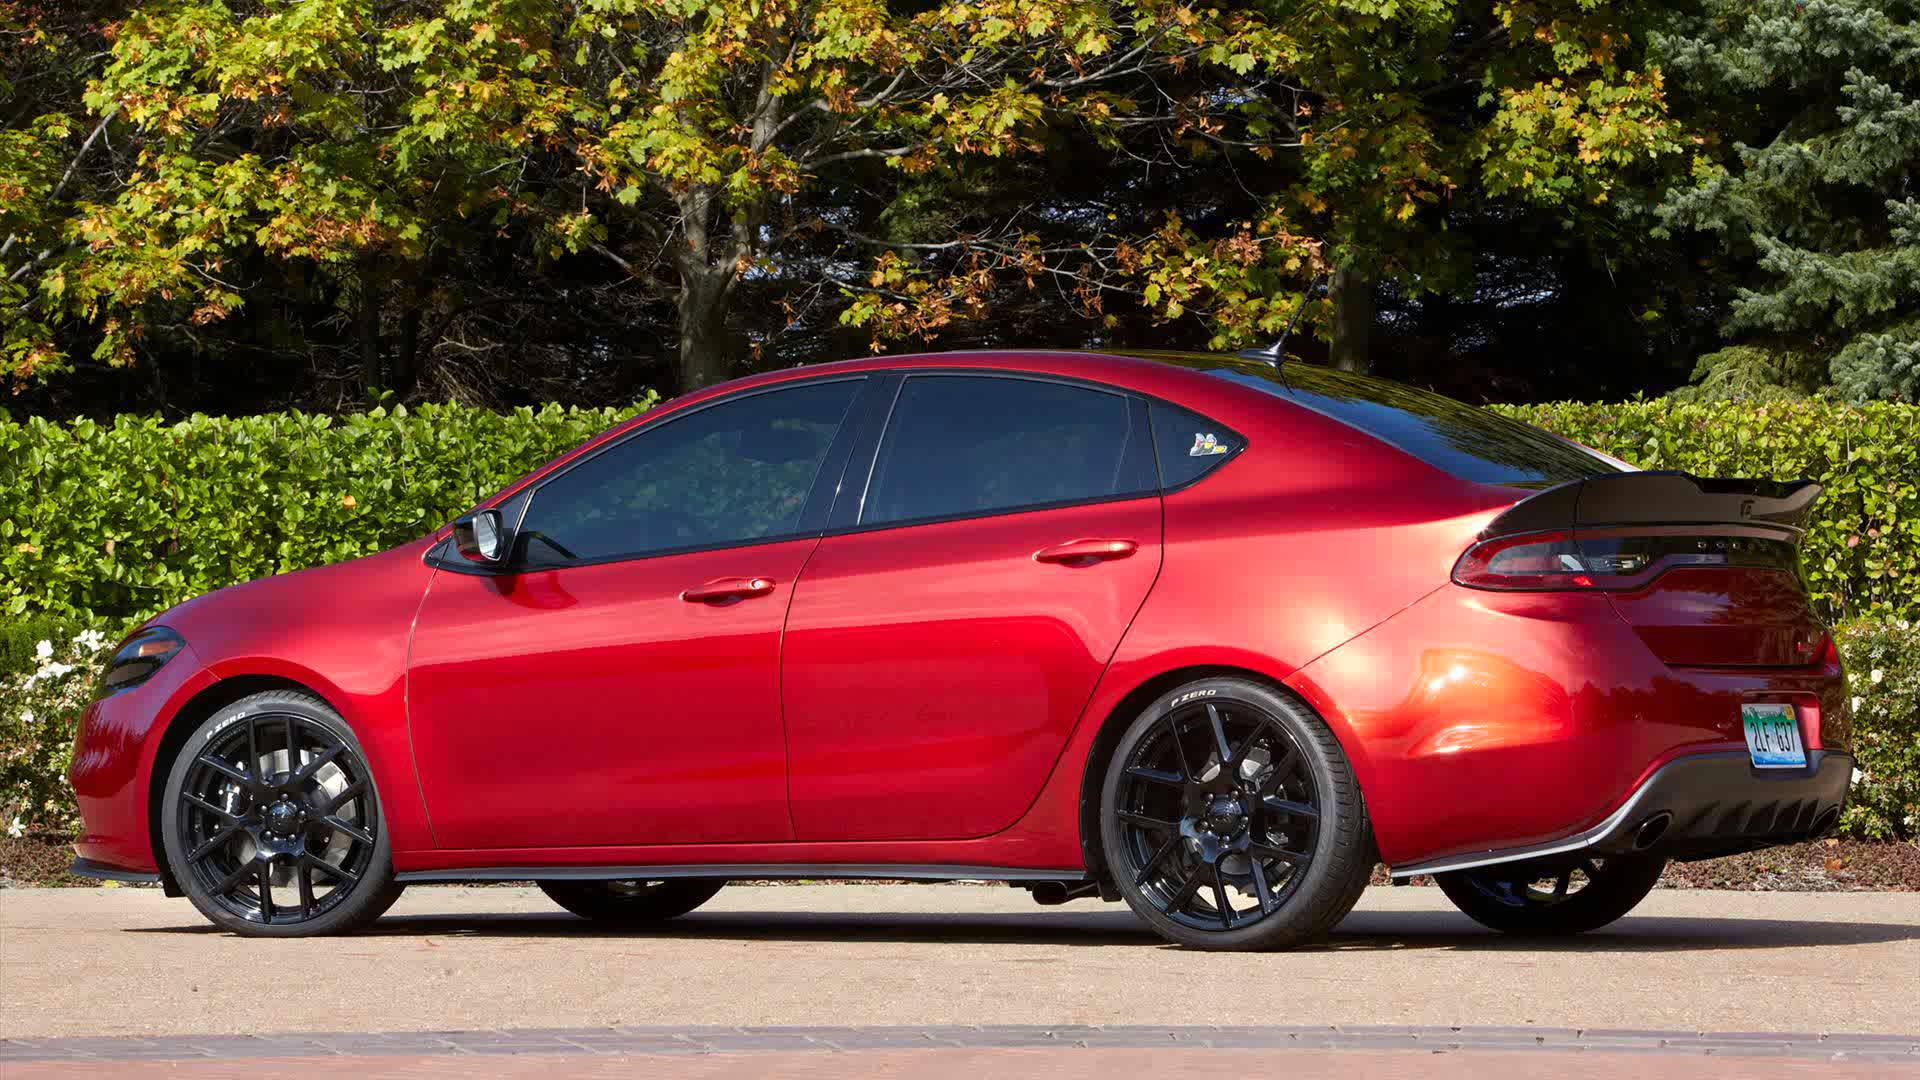 2015 Dodge Dart – pictures. information and specs - Auto-Database.com